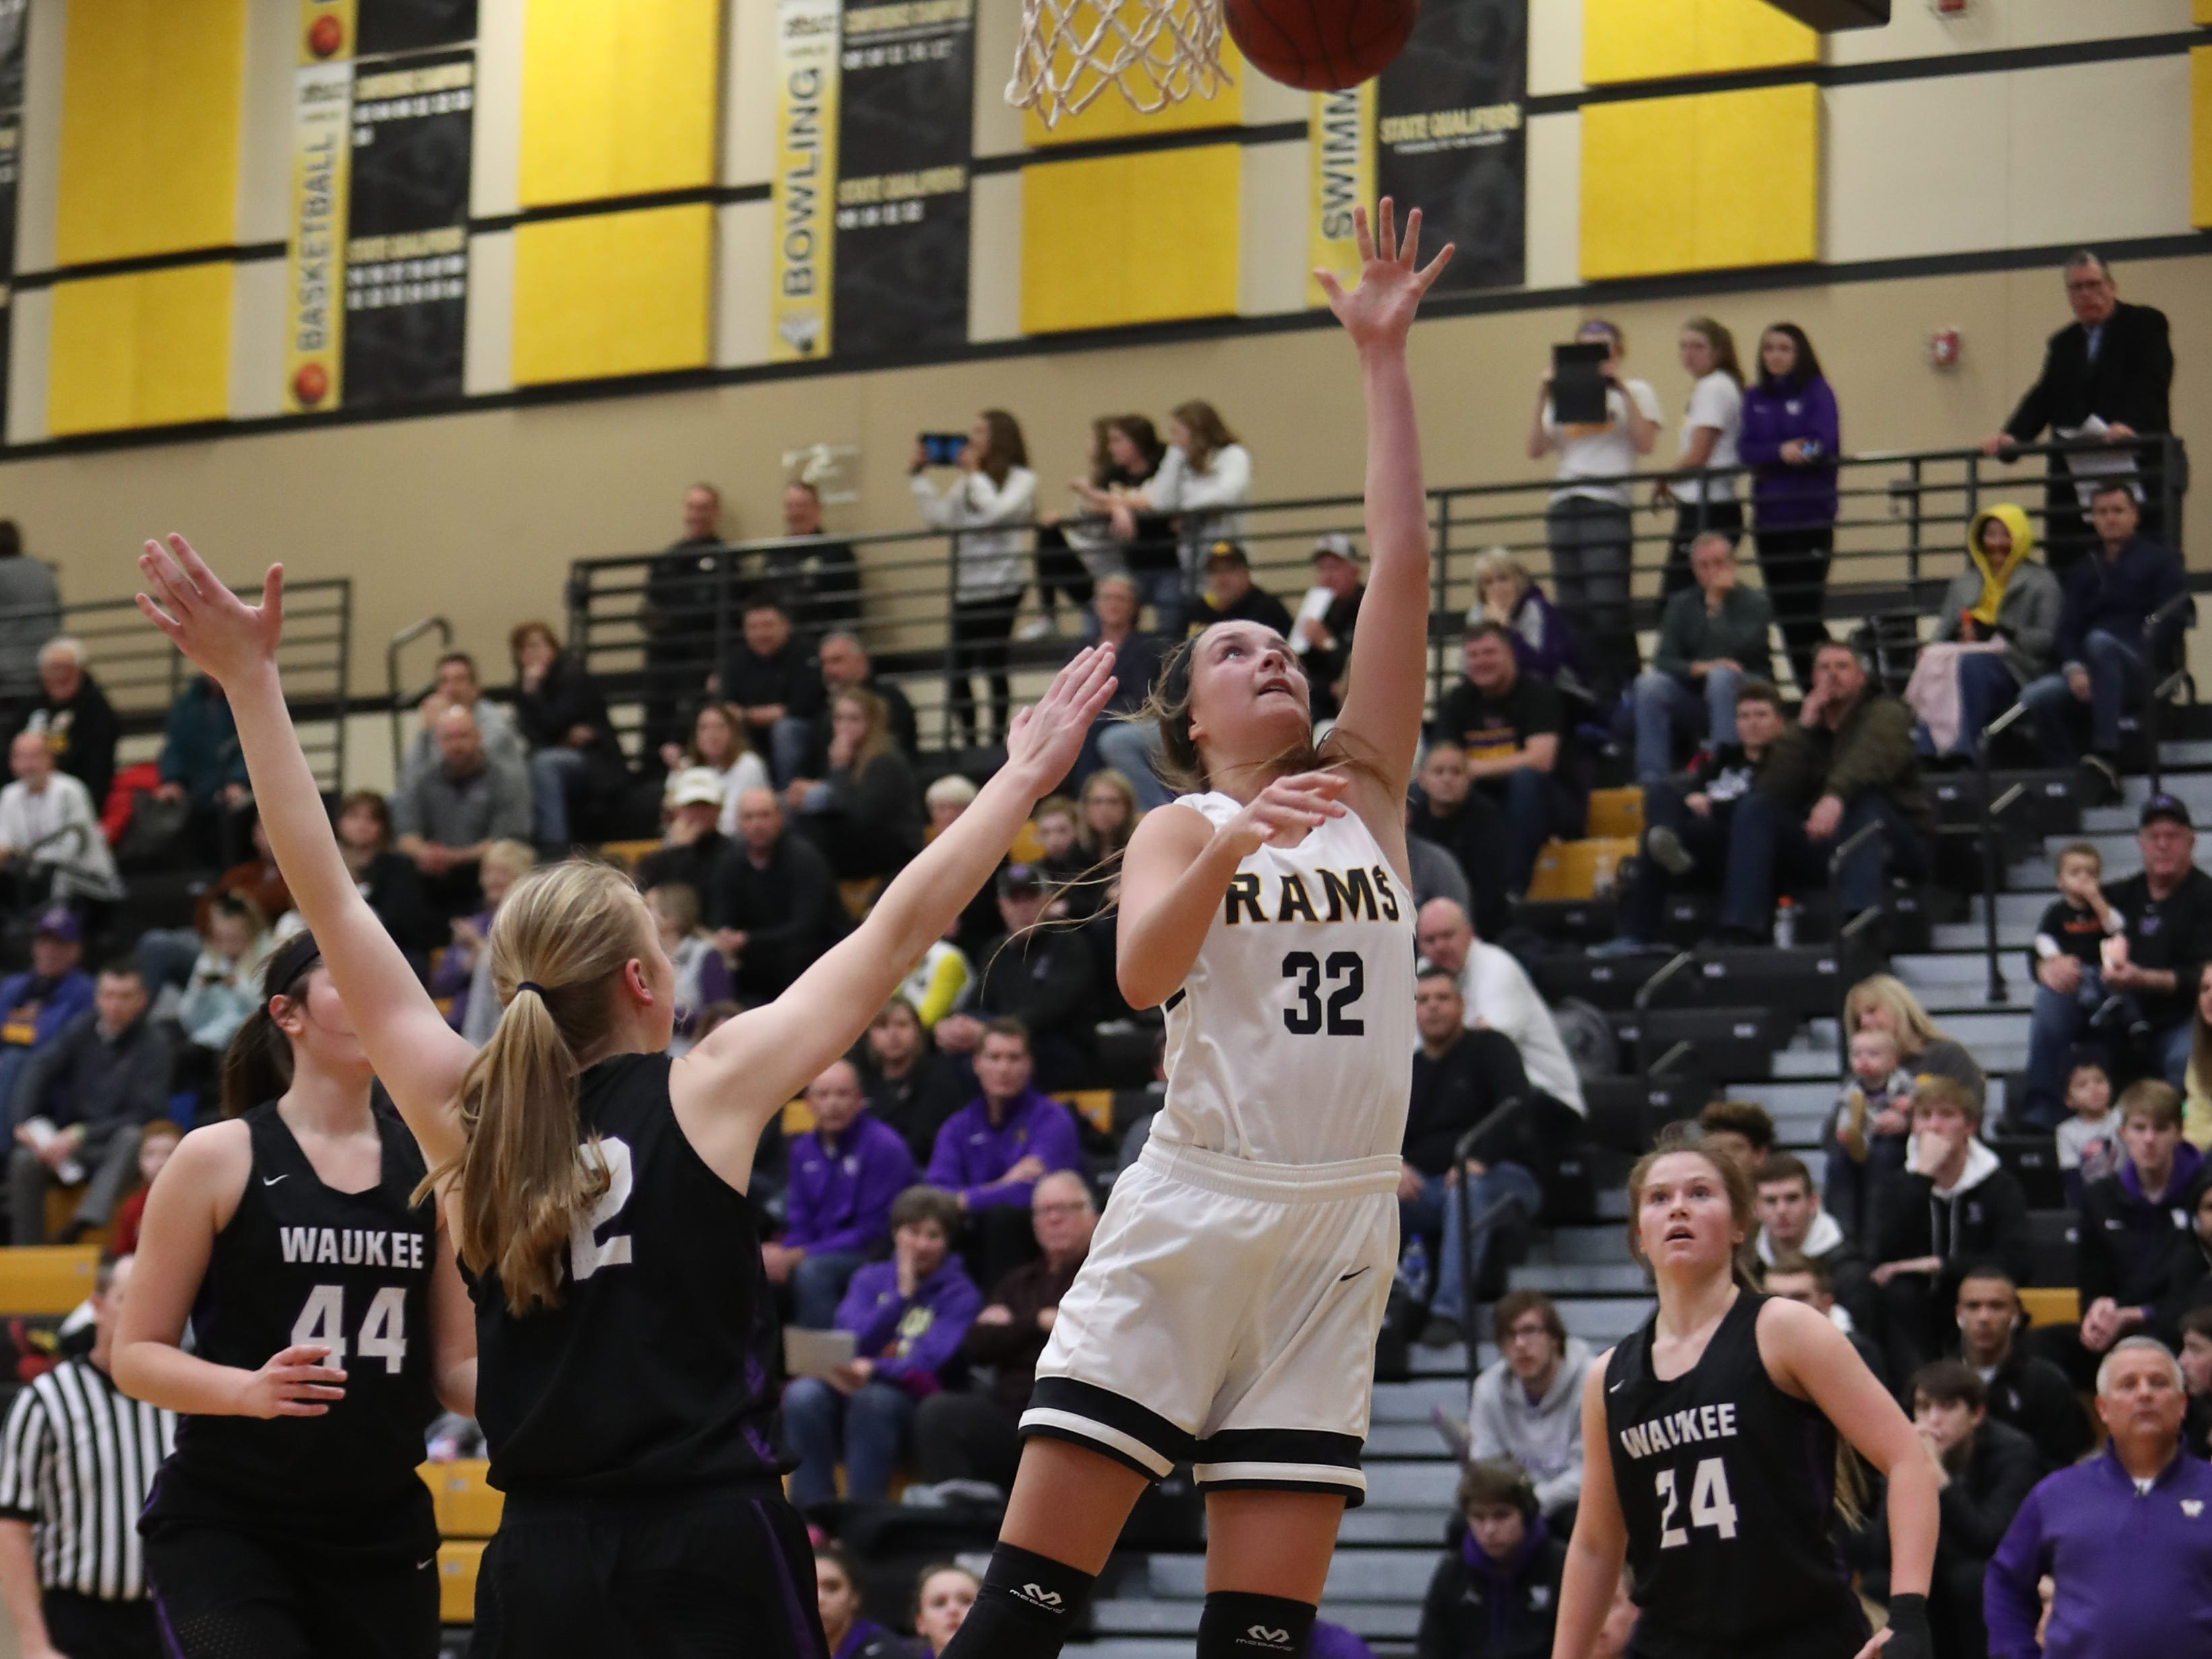 Southeast Polk Rams' Maggie McGraw (32) scores against the Waukee Warriors during a game Feb. 1, 2019 at Southeast Polk High School.